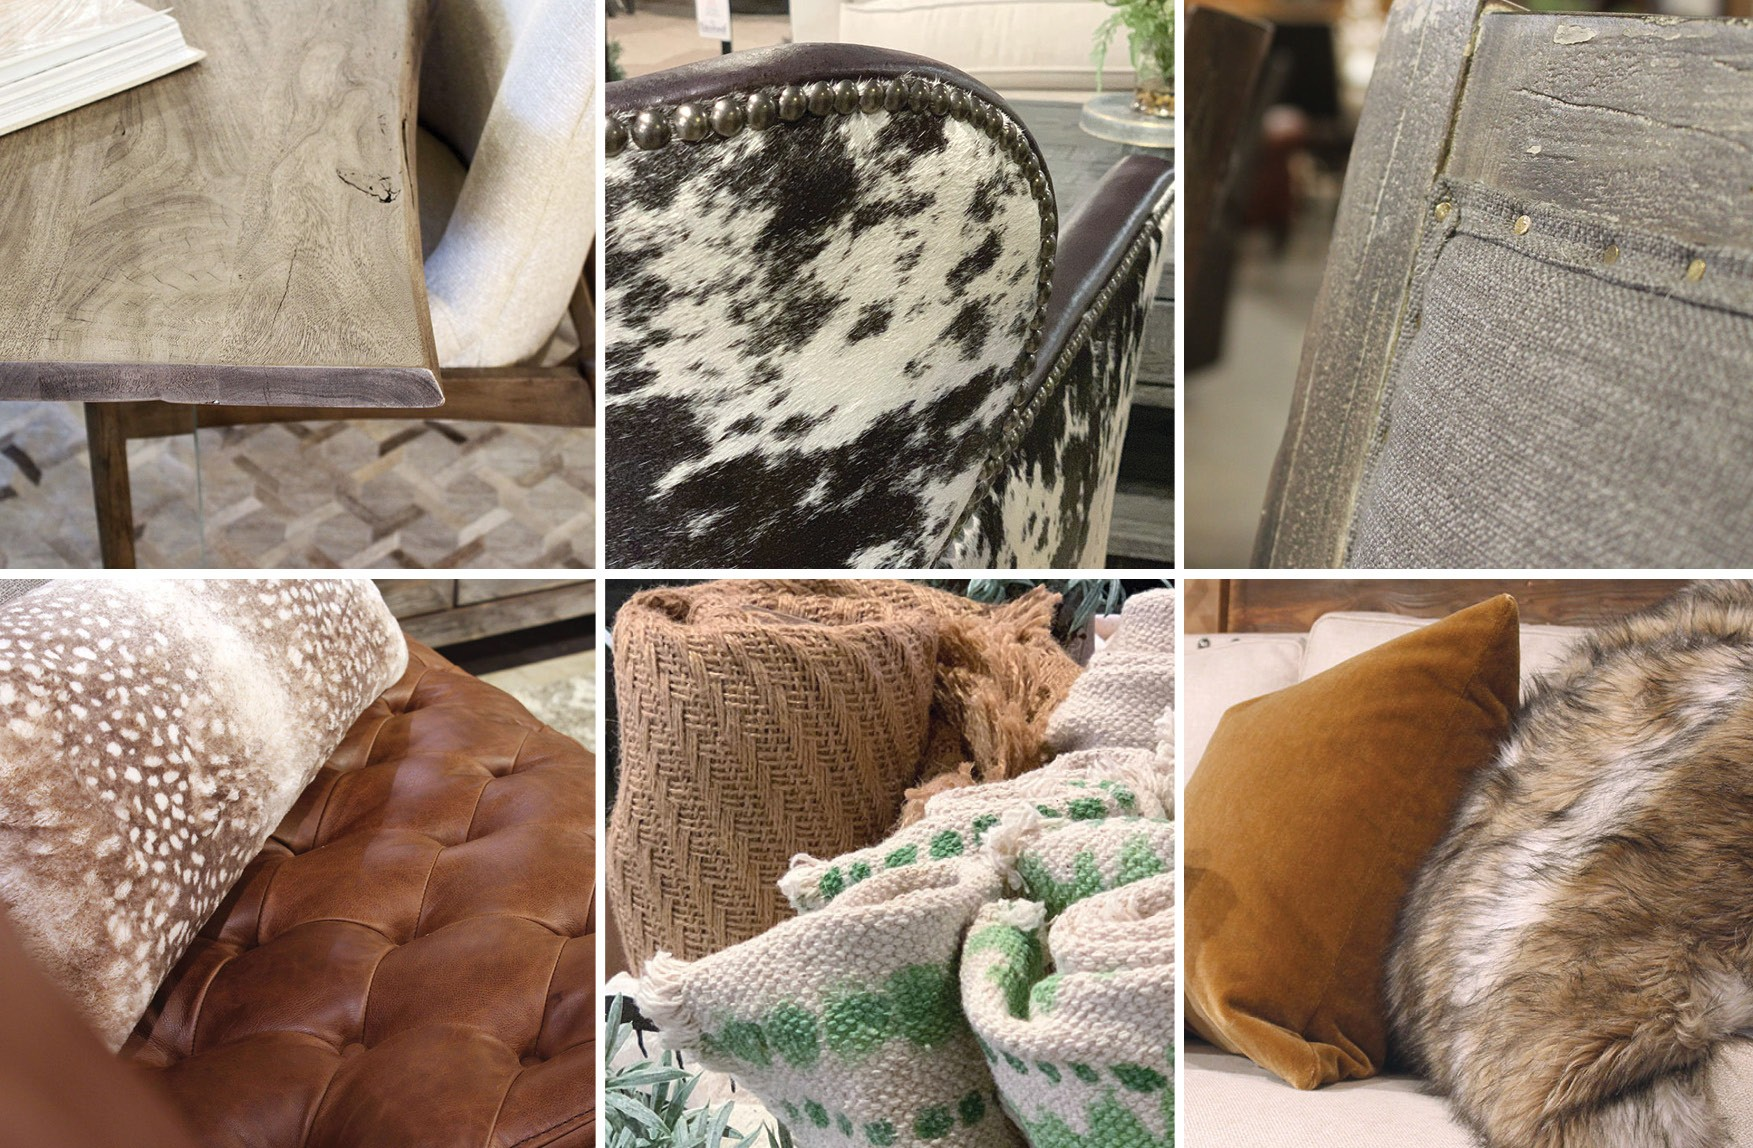 Textures were on display at the recent 